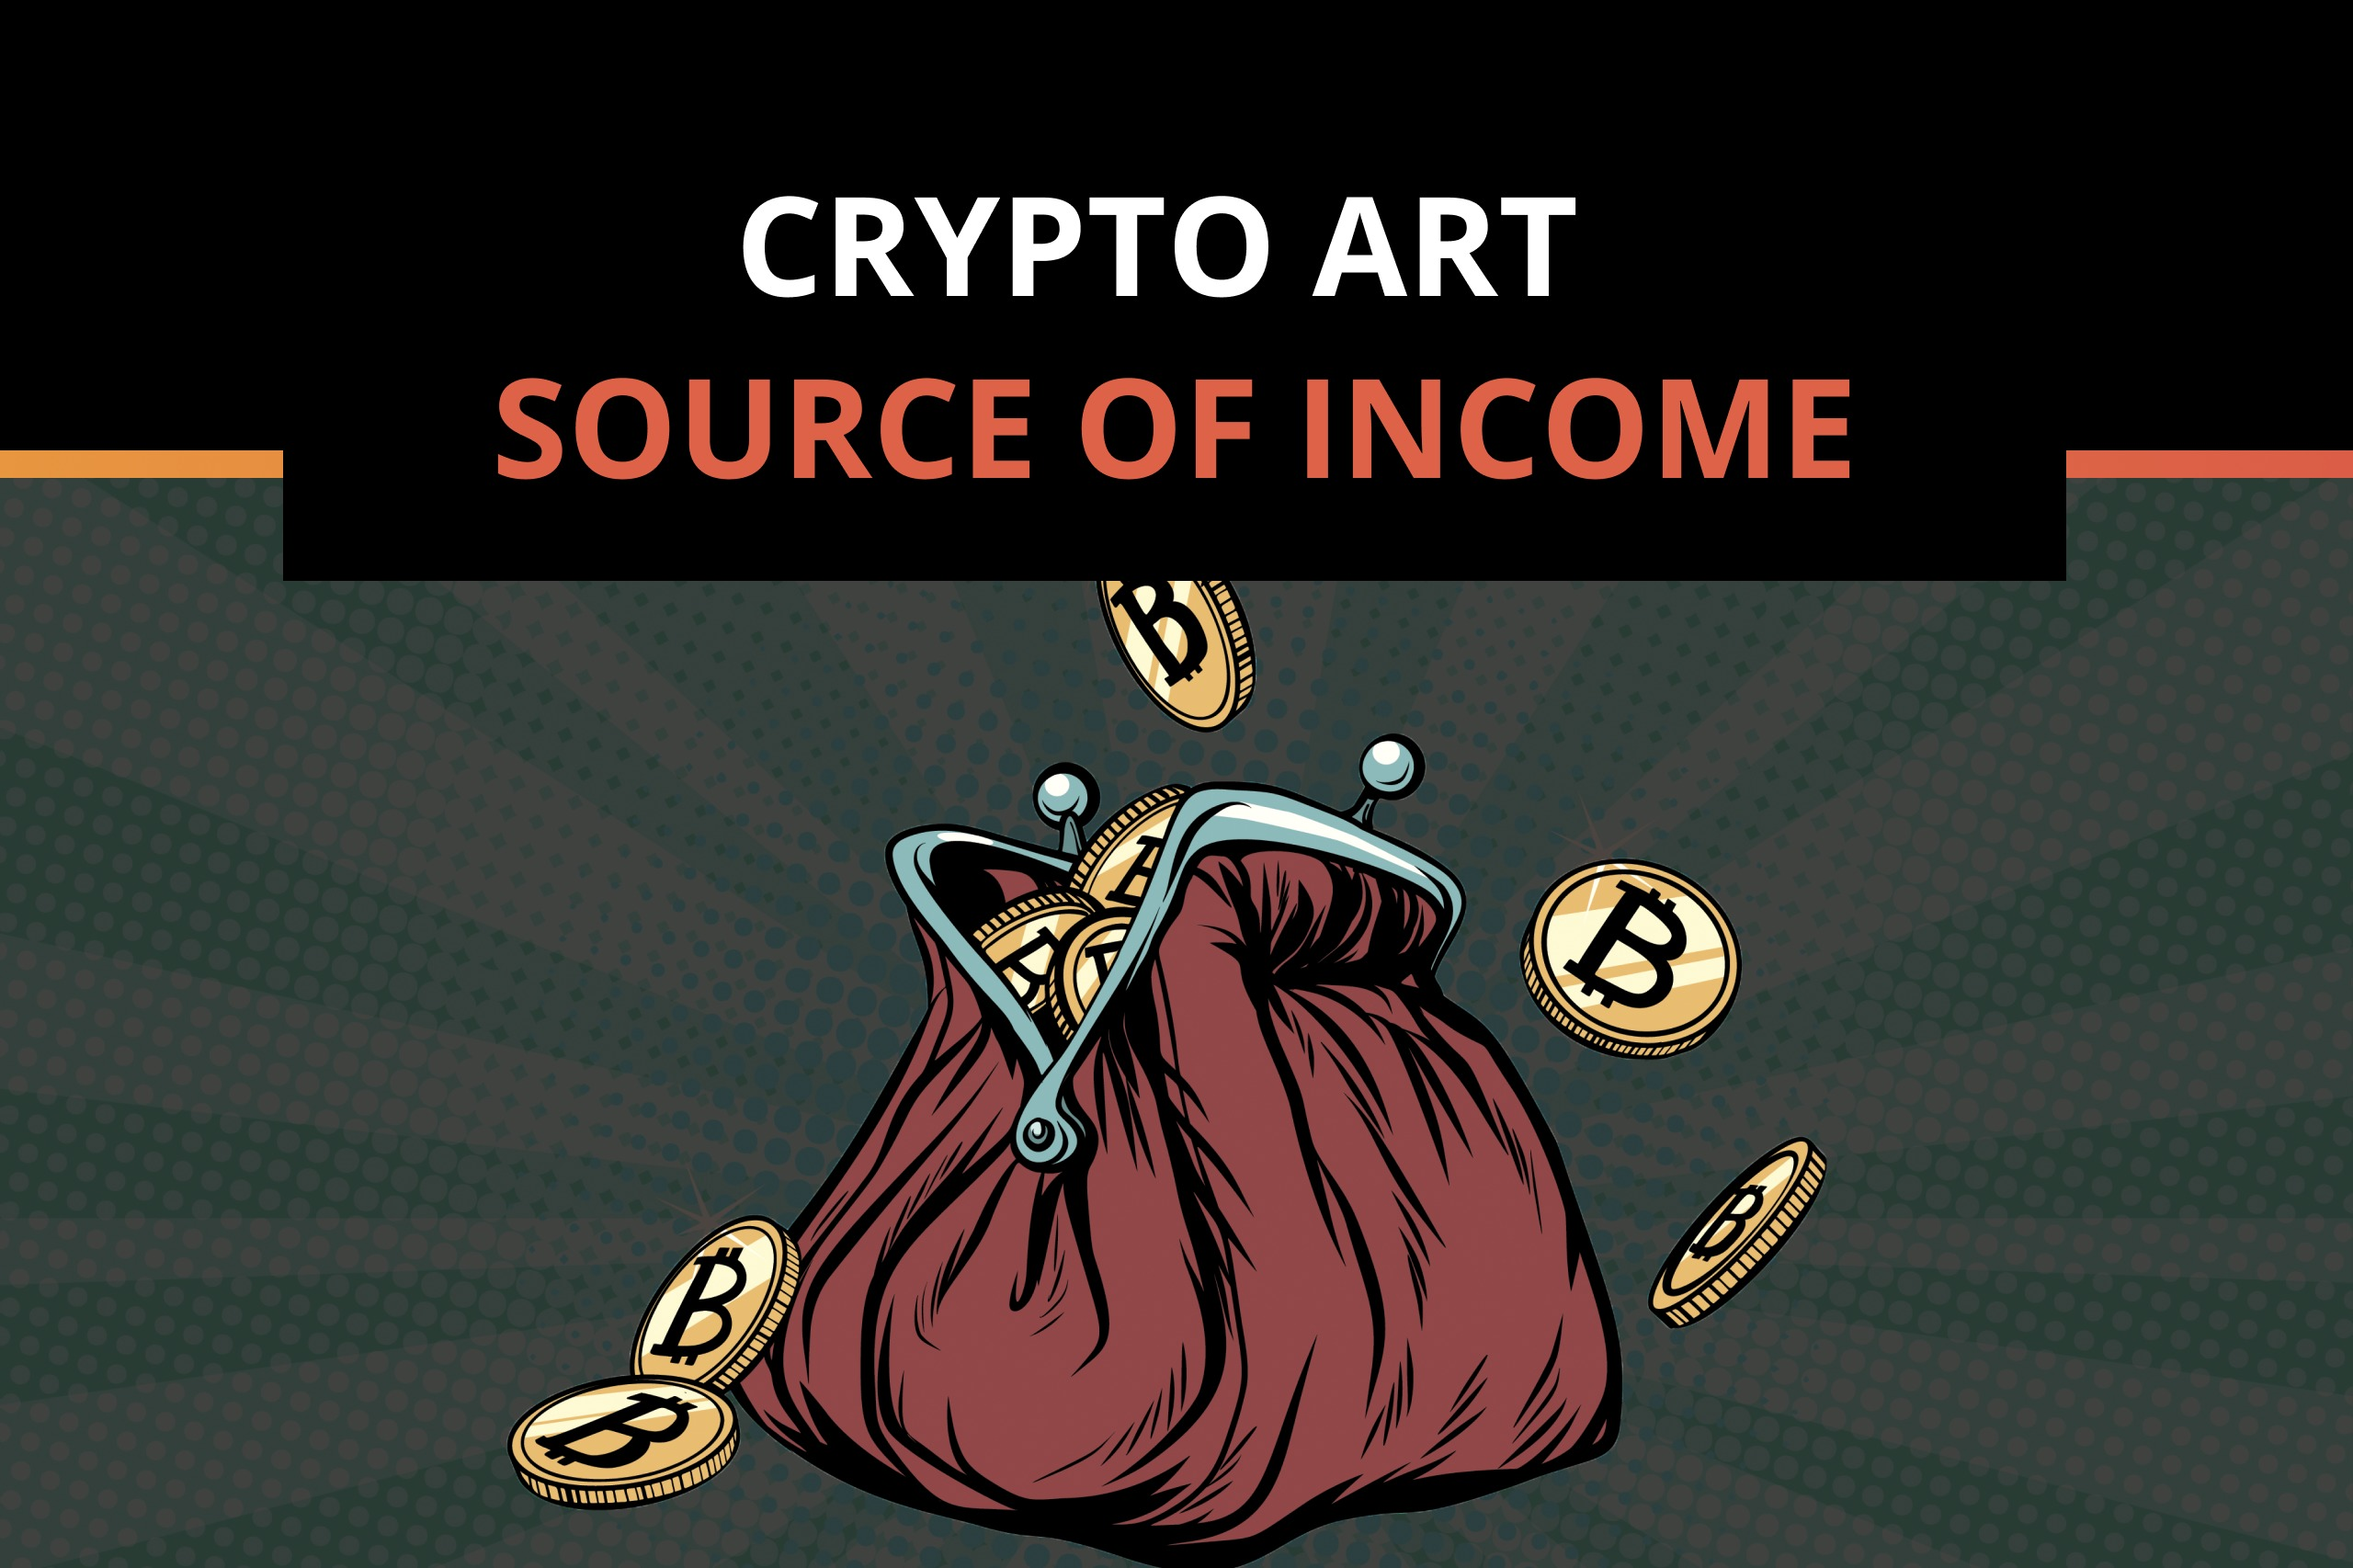 Crypto art could become a primary source of income for musicians